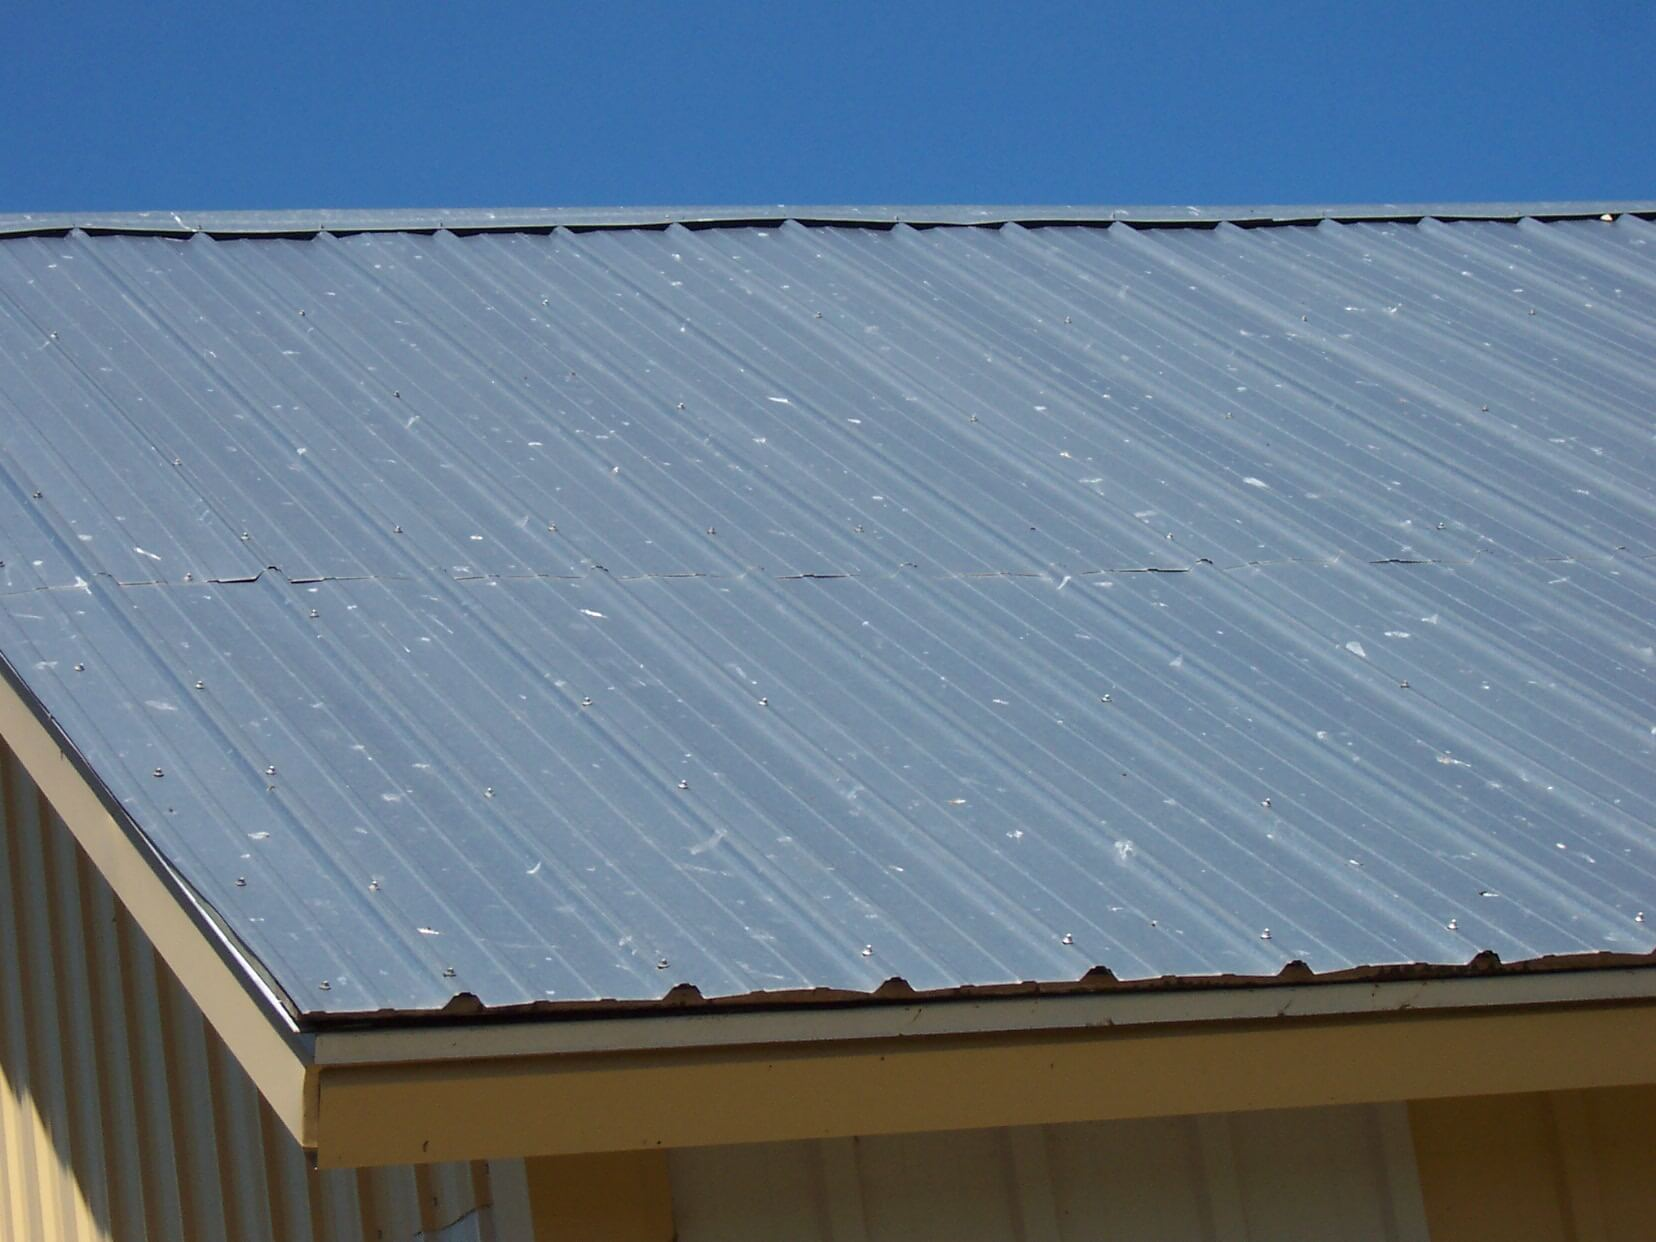 insurance companies increasingly deny metal roof hail damage claims